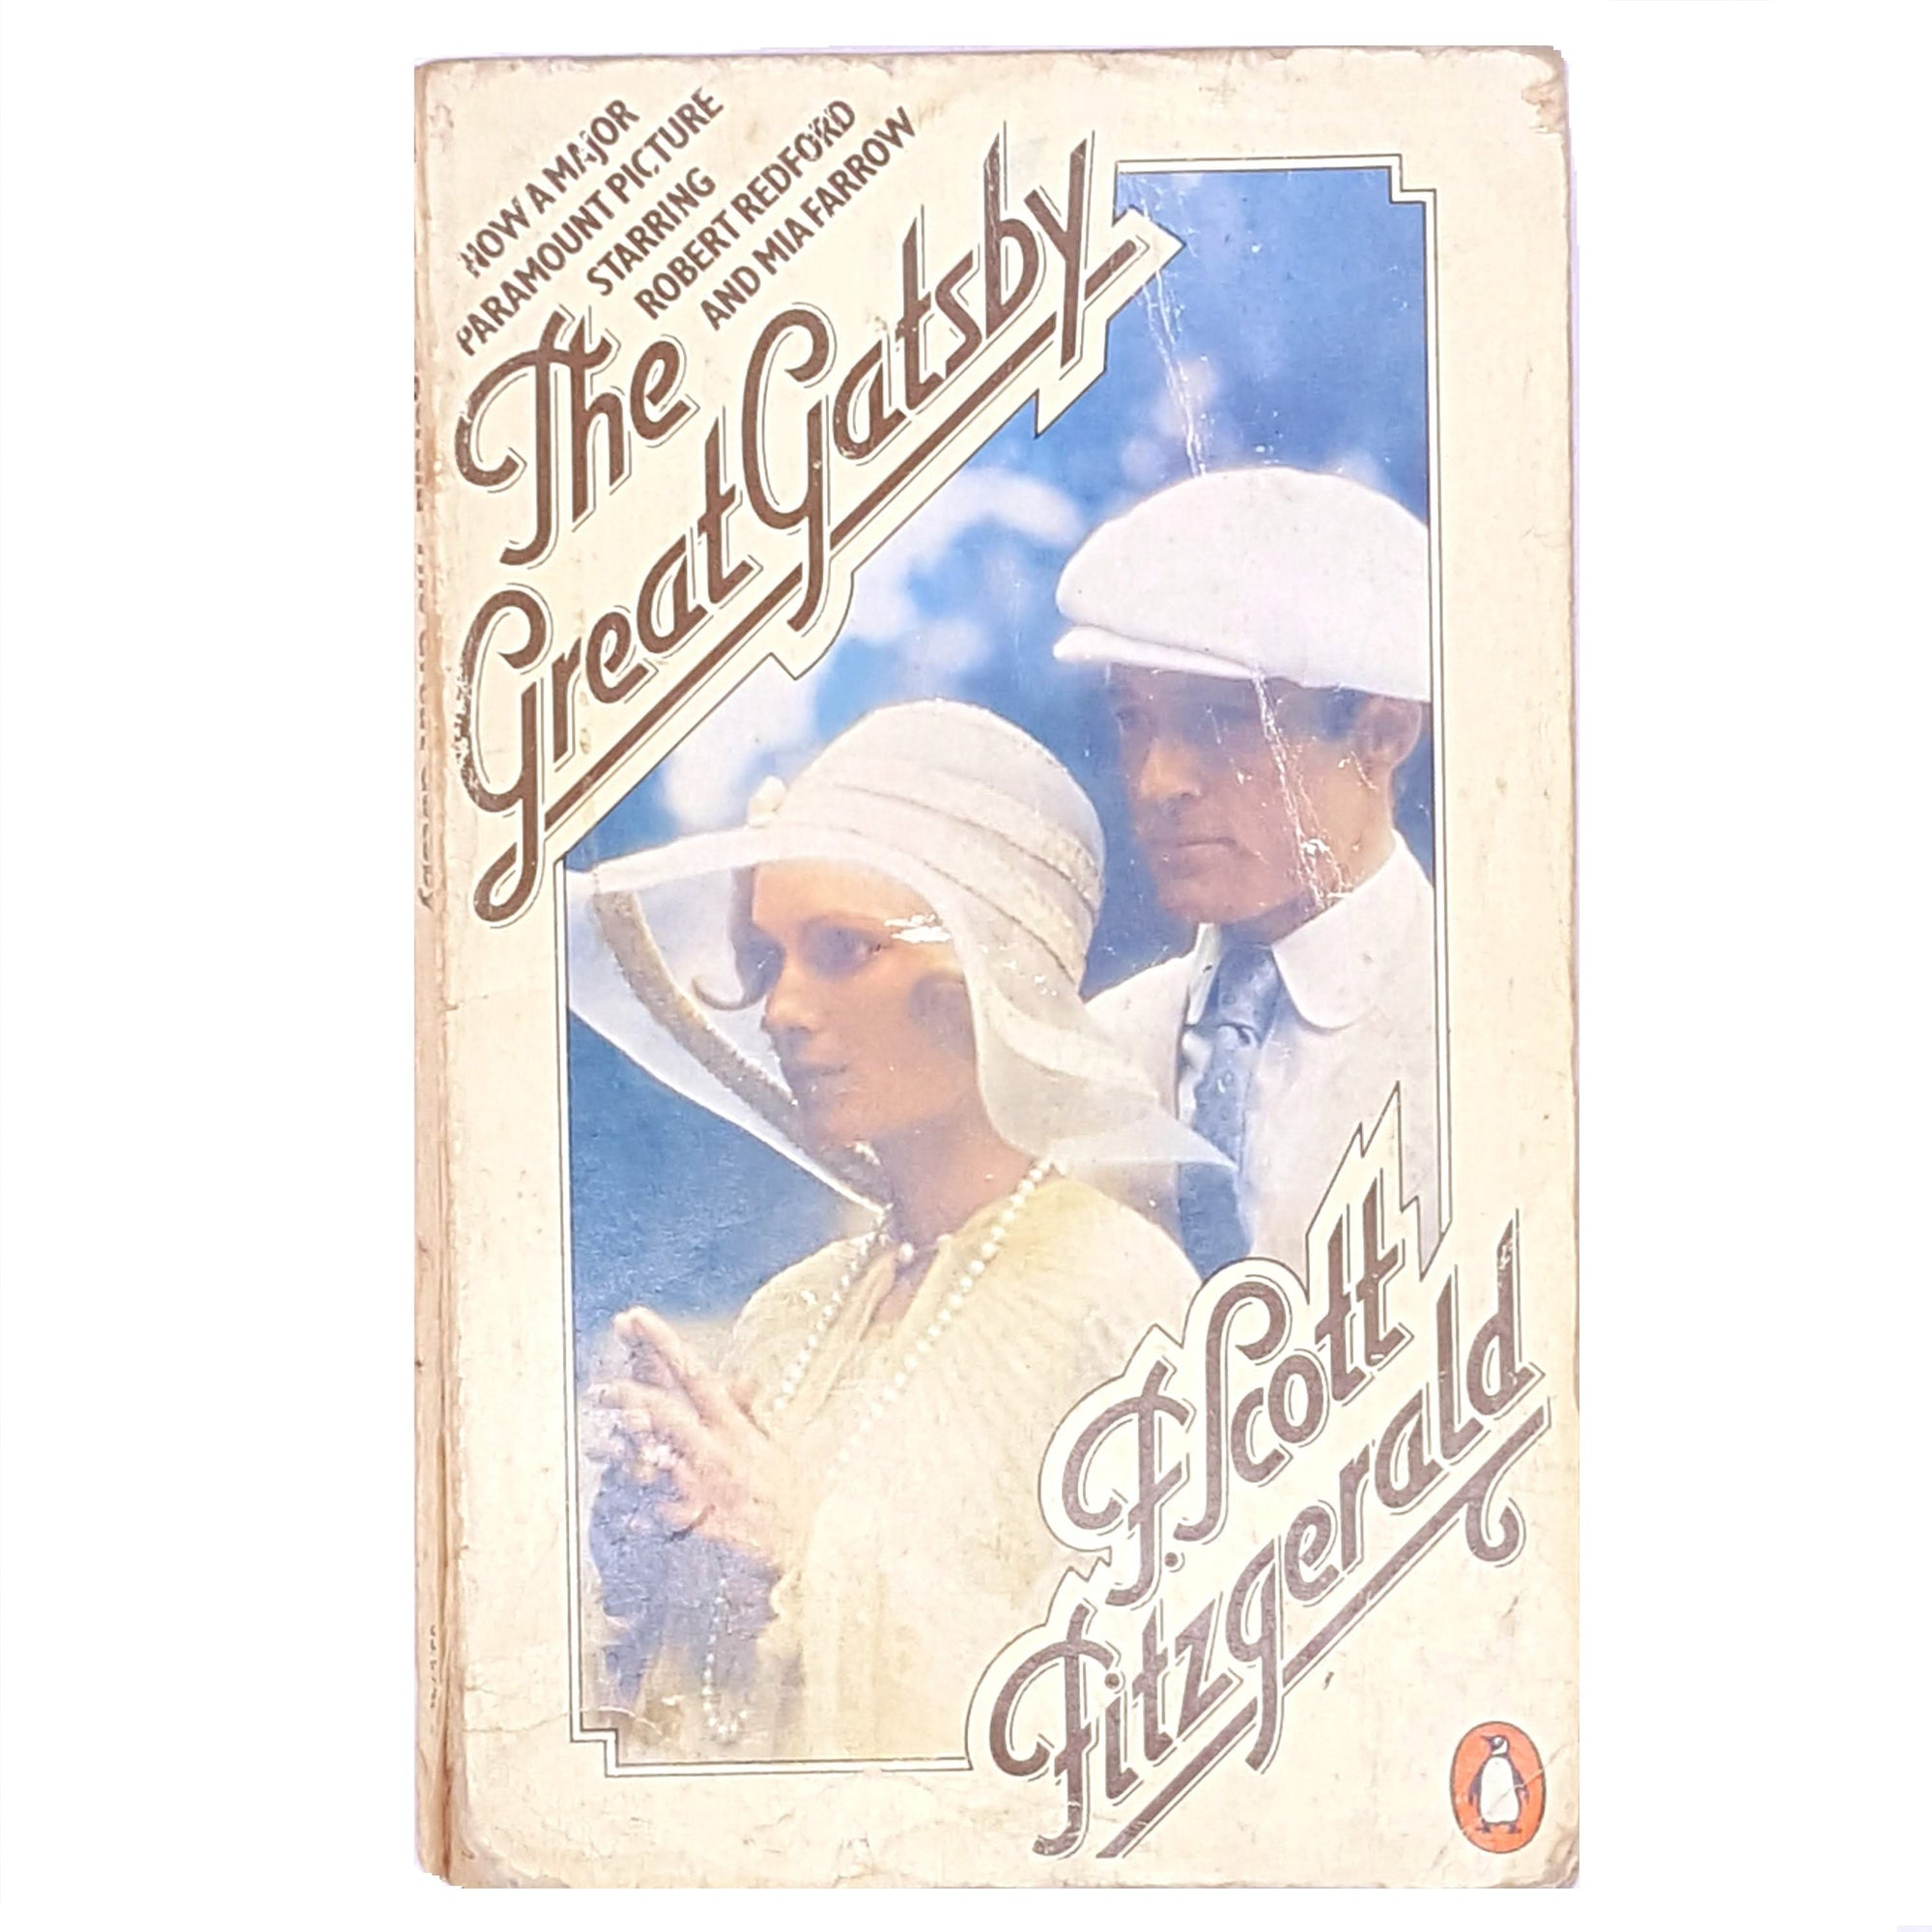 The Great Gatsby by F. Scott Fitzgerald. - Penguin